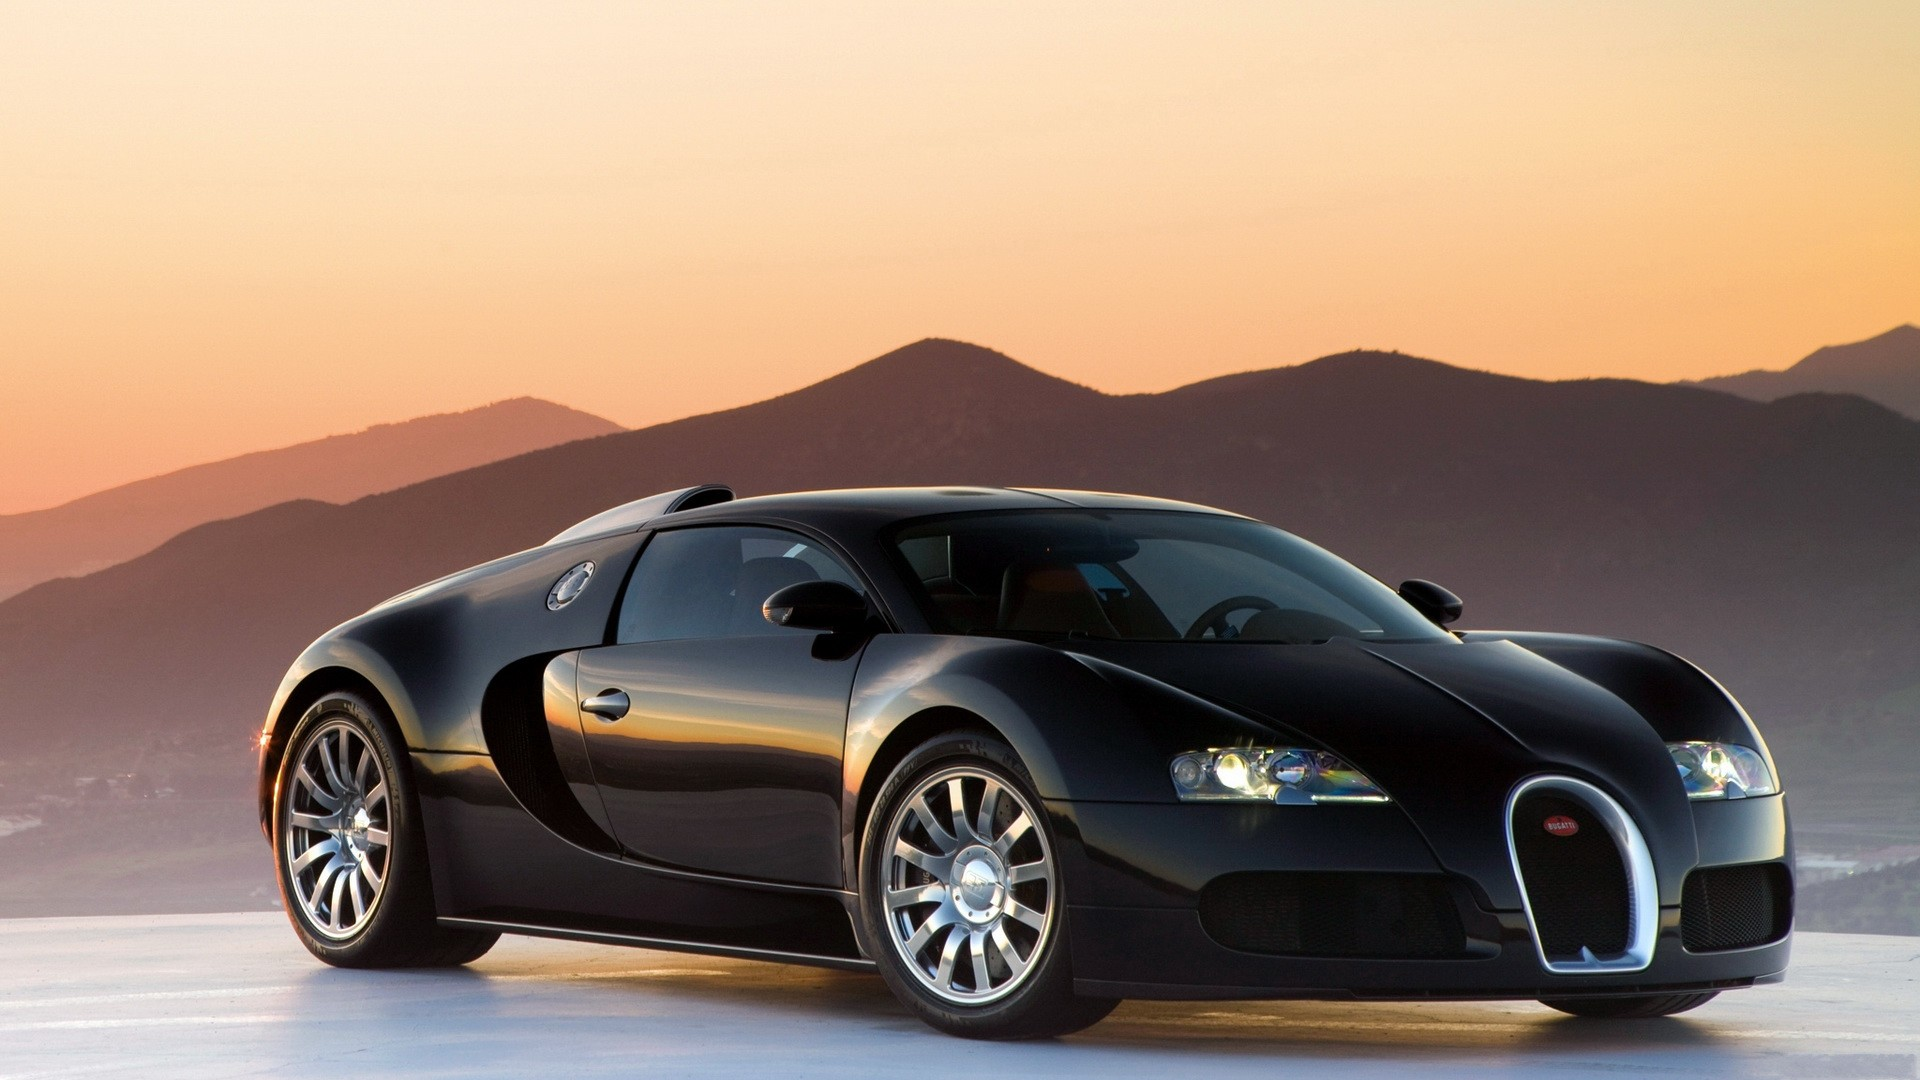 bugatti full hd wallpaper and background image | 1920x1080 | id:437015